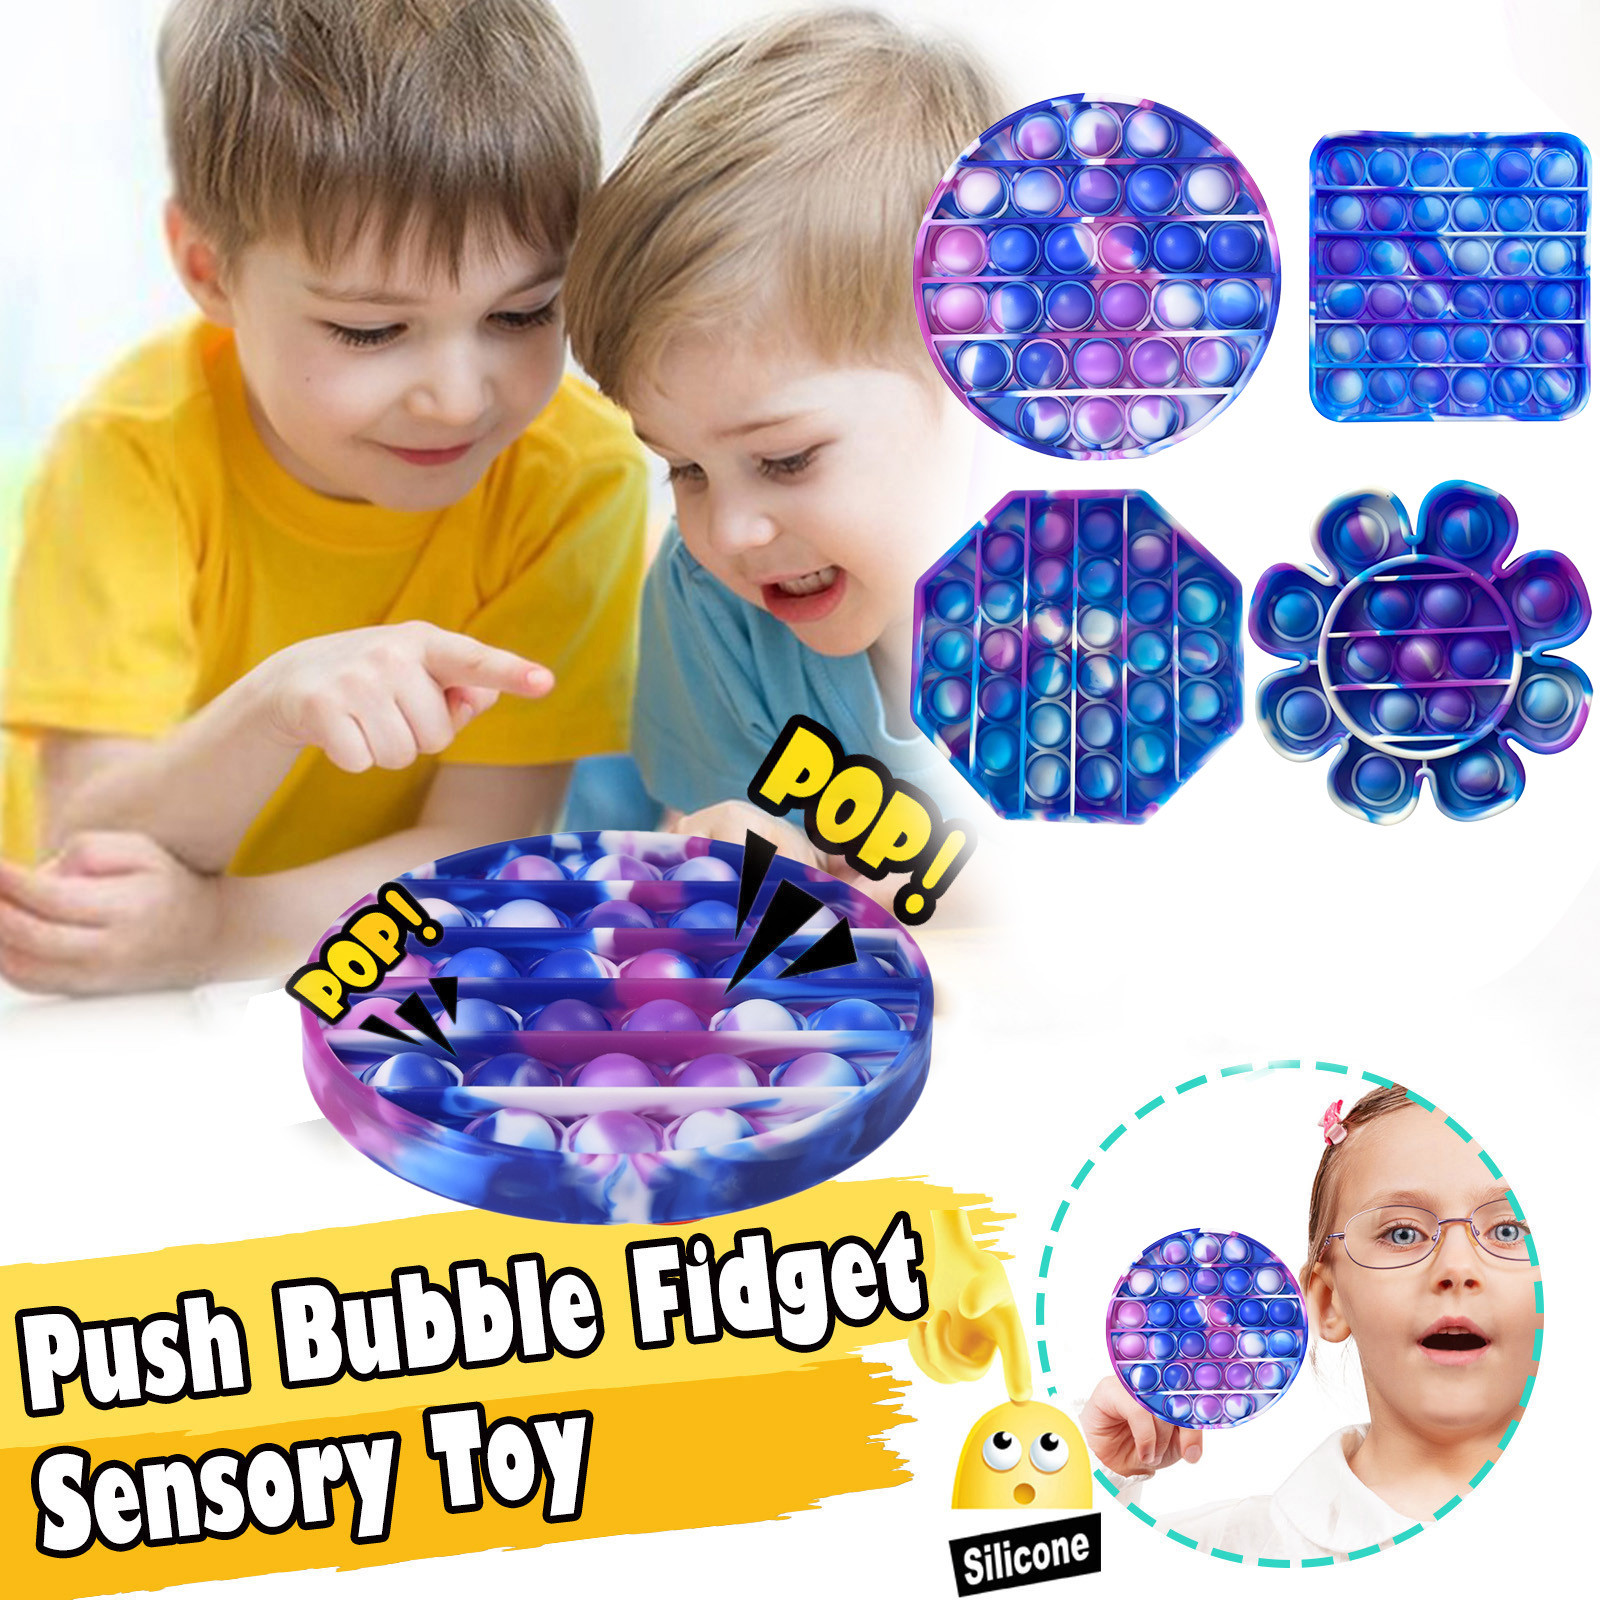 Bubble-Sensory-Toy Fidget-Toys Autism Adhd Popit-Stress Special Needs Squishy Reliever img3